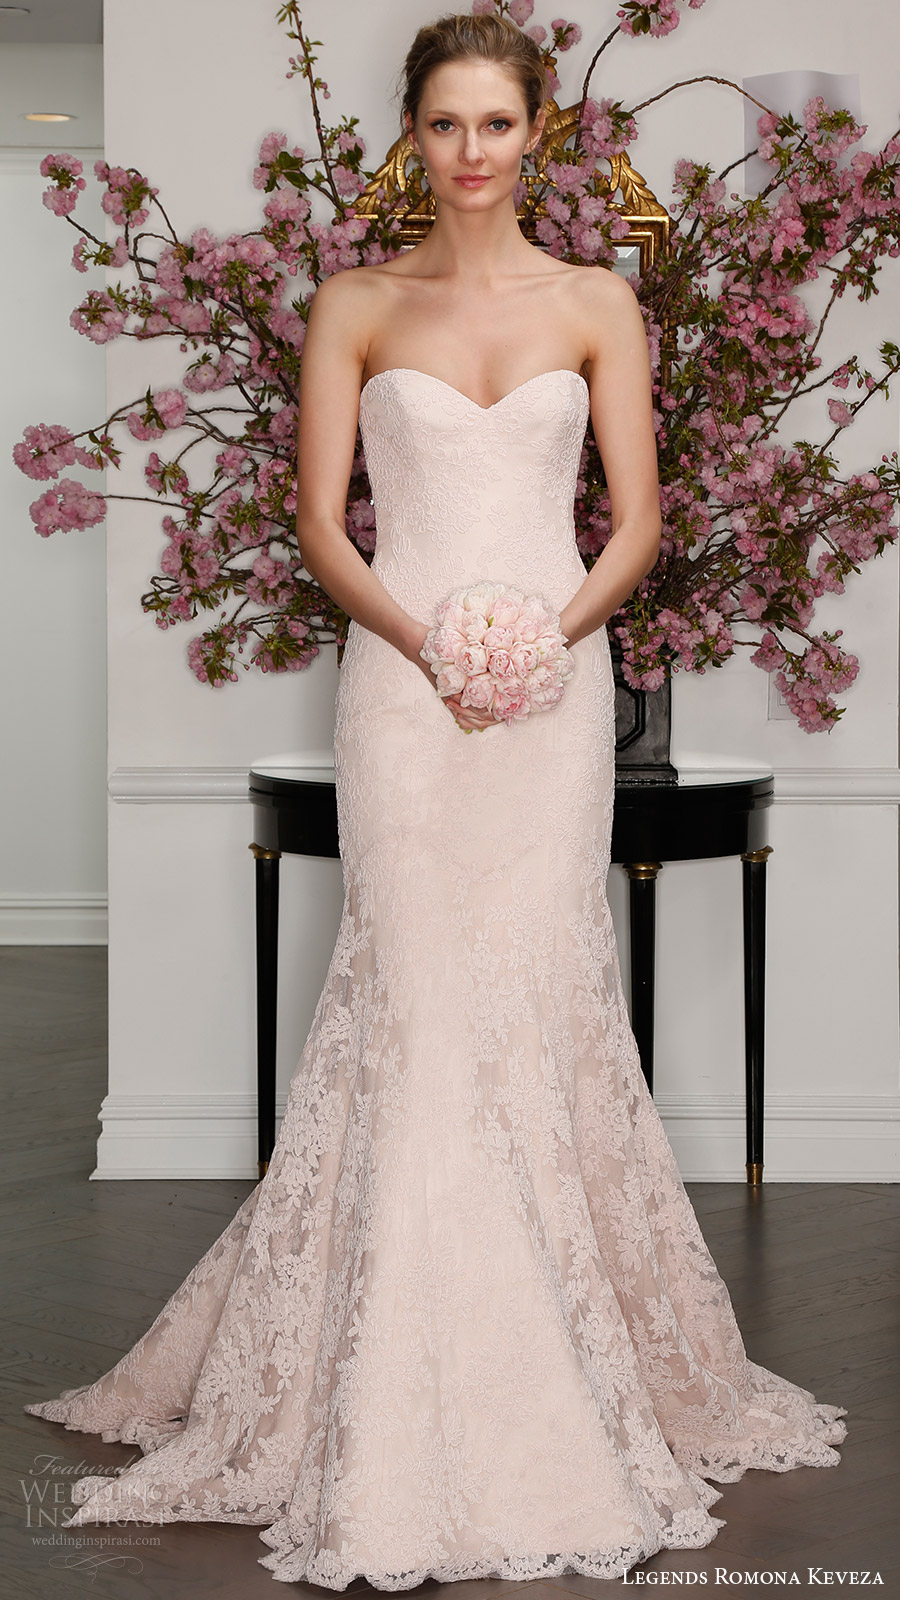 legends romona keveza bridal spring 2017 strapless sweetheart lace trumpet wedding dress (l7125) mv blush color